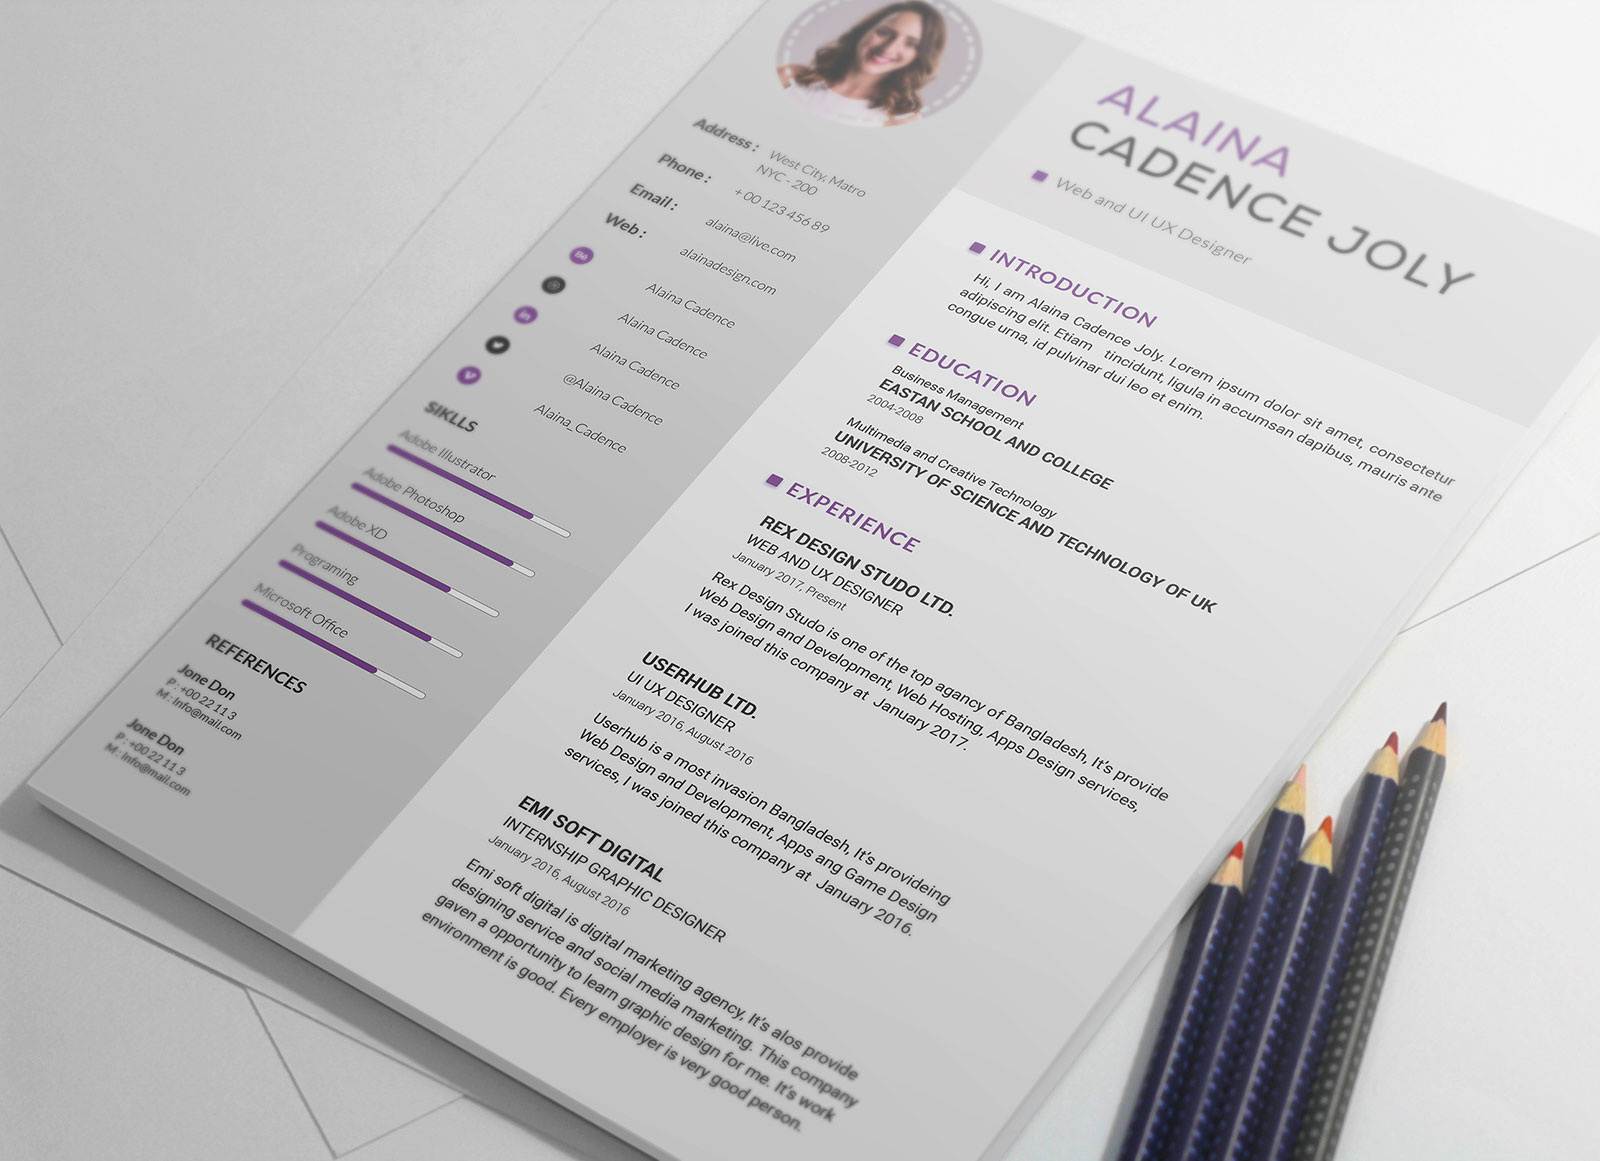 Free-Clean-&-Professional-Resume-With-Cover-Letter-PSD-3 - Copy